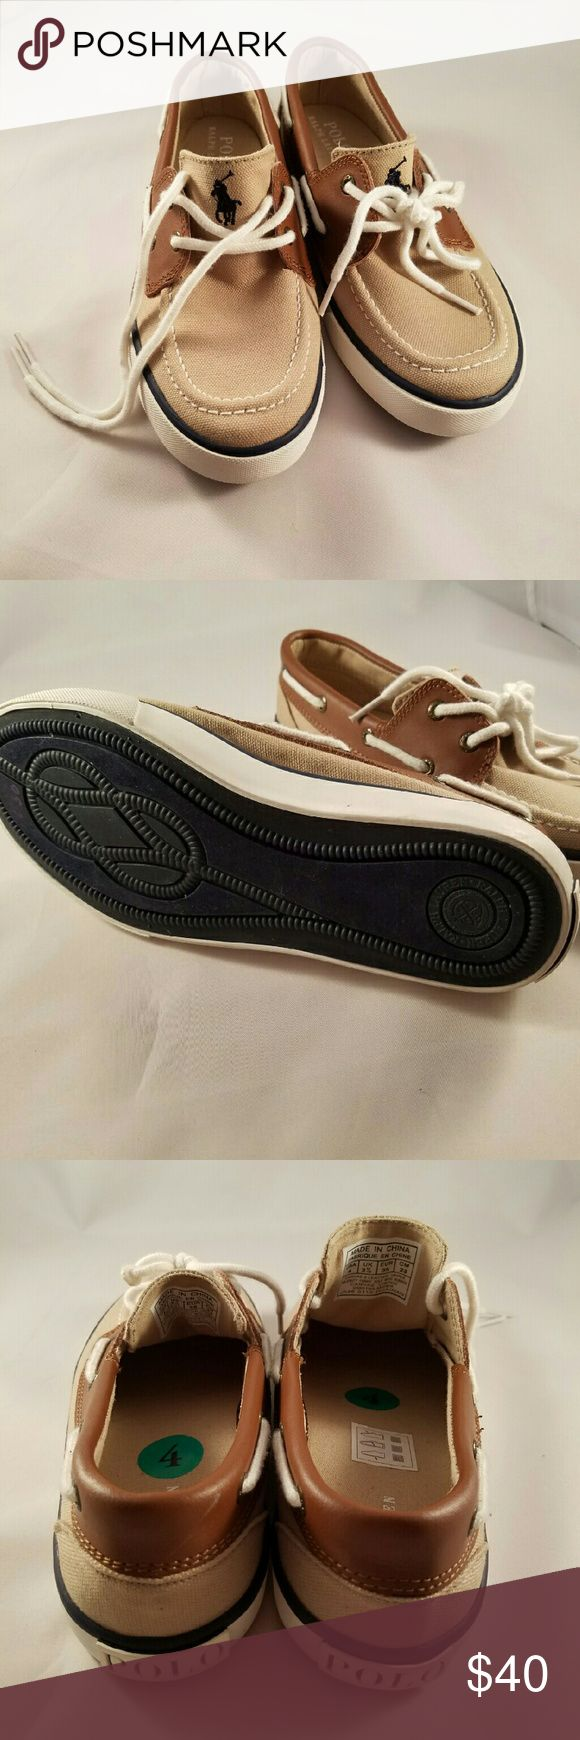 NEW Kids Polo Ralph Lauren Boat Shoes Size 4 New without box. The manufacturer color name is sander. Polo by Ralph Lauren Shoes Sneakers